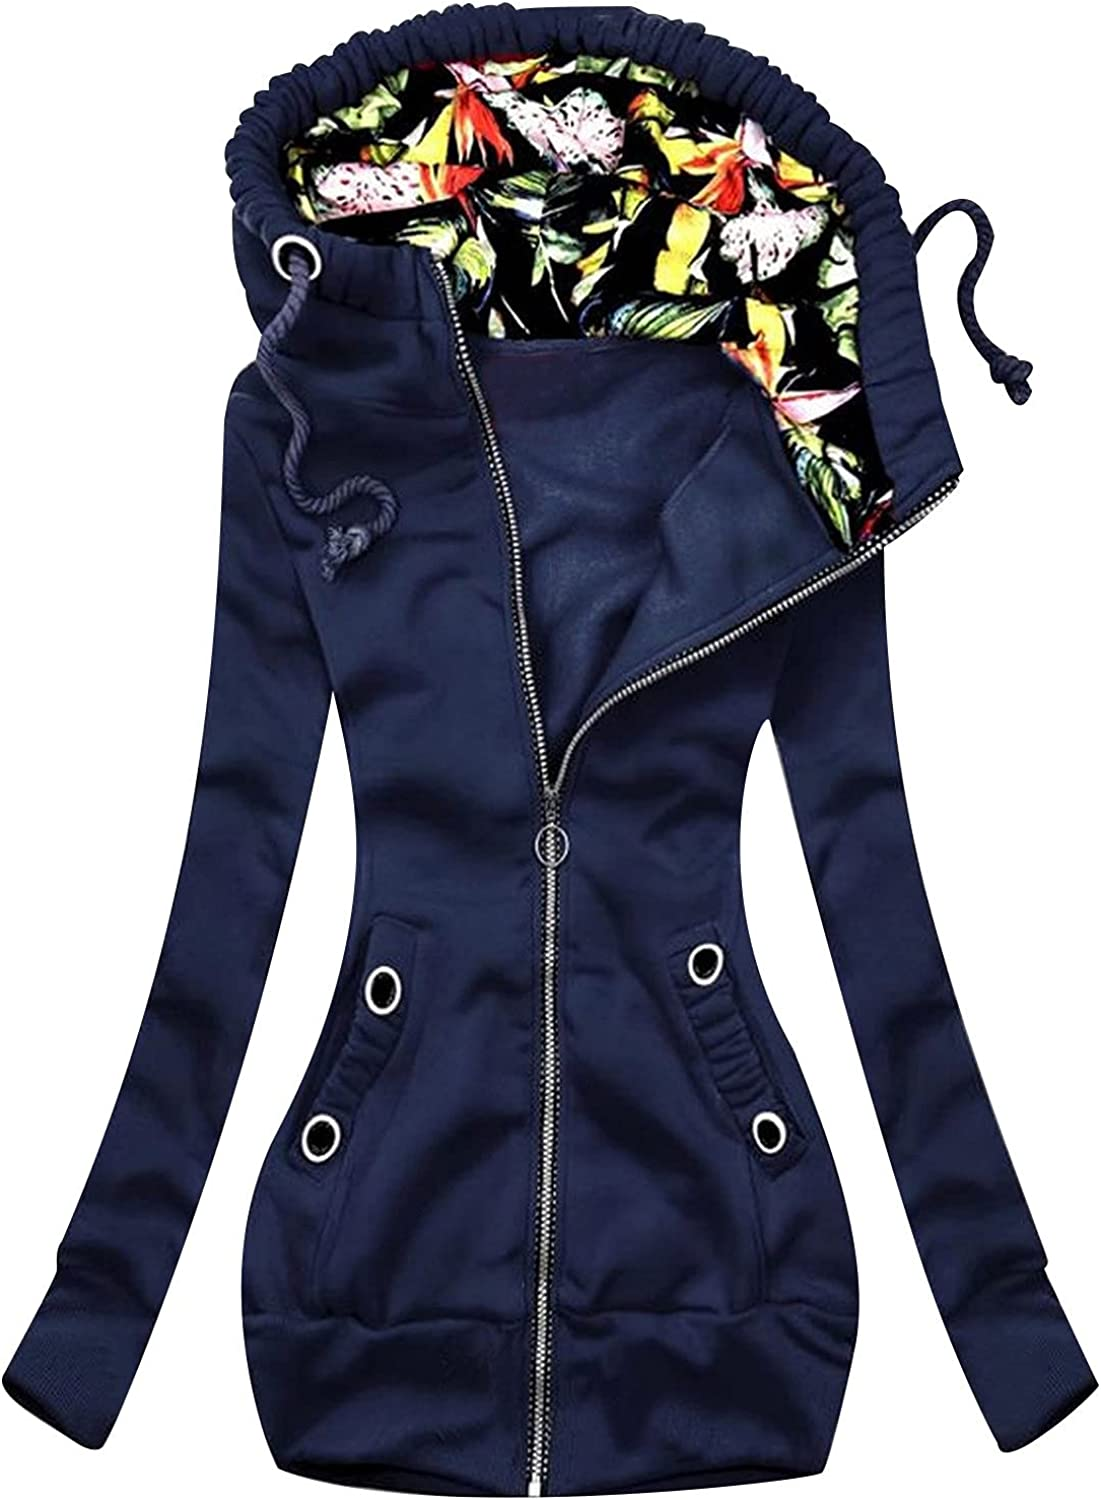 Women's Trench Coats,Women's Large Print Hooded Plus Size Warm Jacket Ring Decoration Zipper Patchwork Long Lined Outerwear